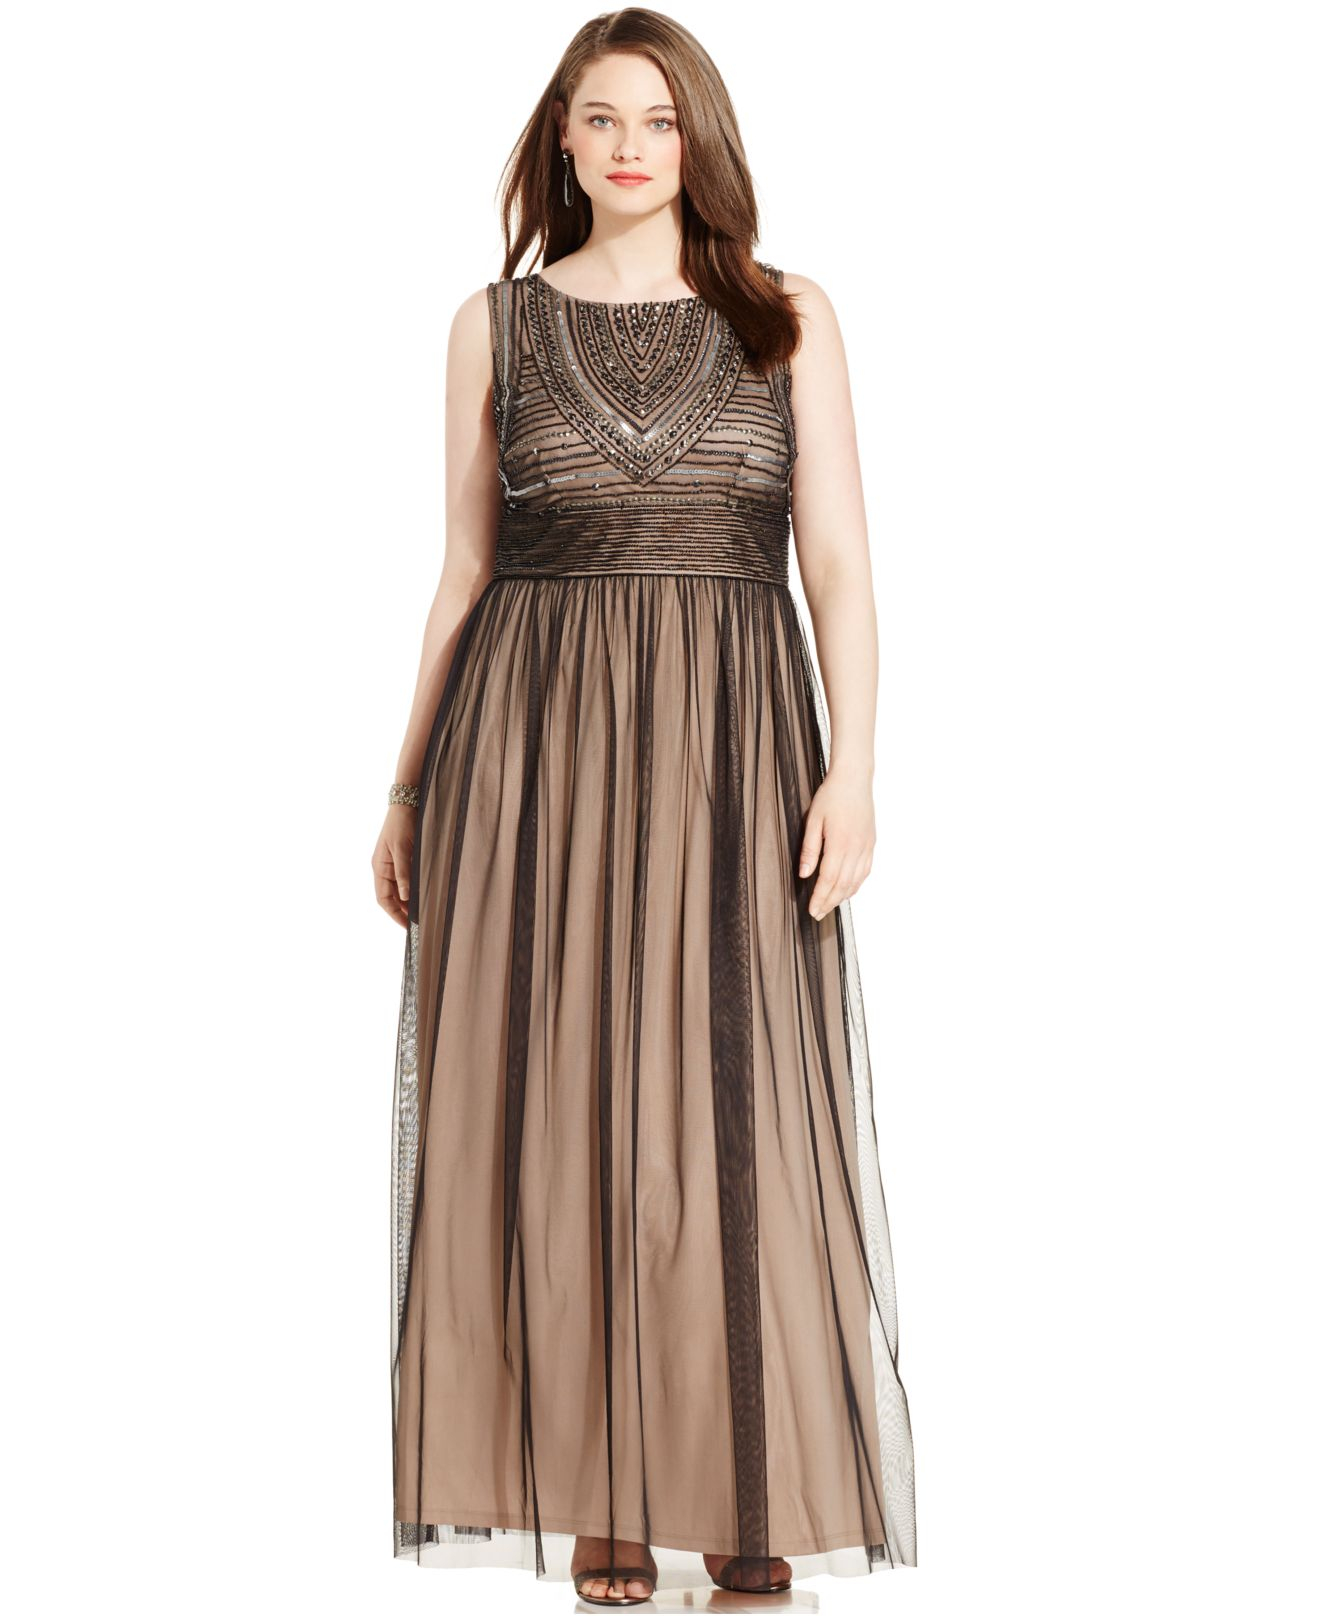 Lyst Adrianna Papell Plus Size Embellished Gown In Brown